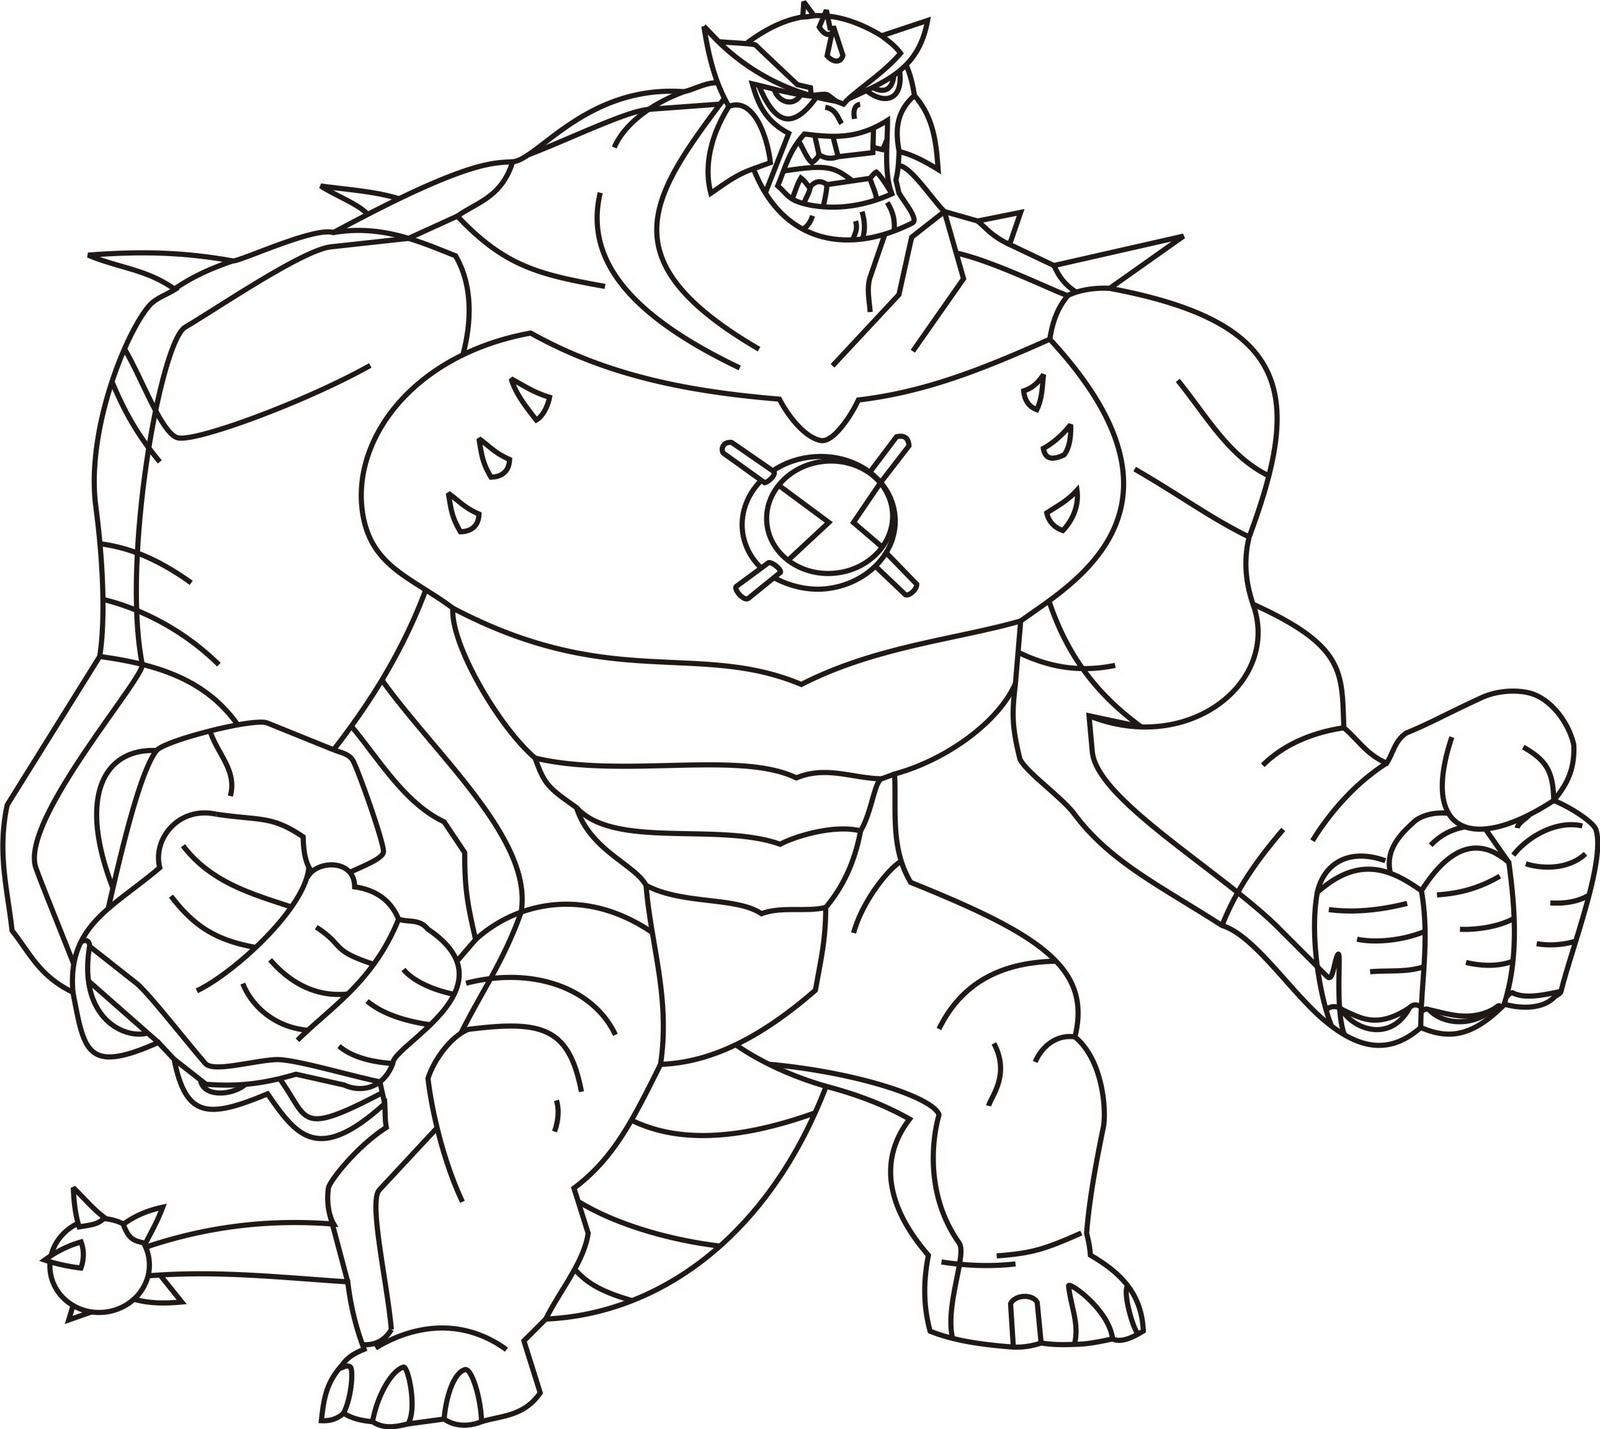 Ben 10 Omniverse Coloring Pictures To Print Coloring Pages